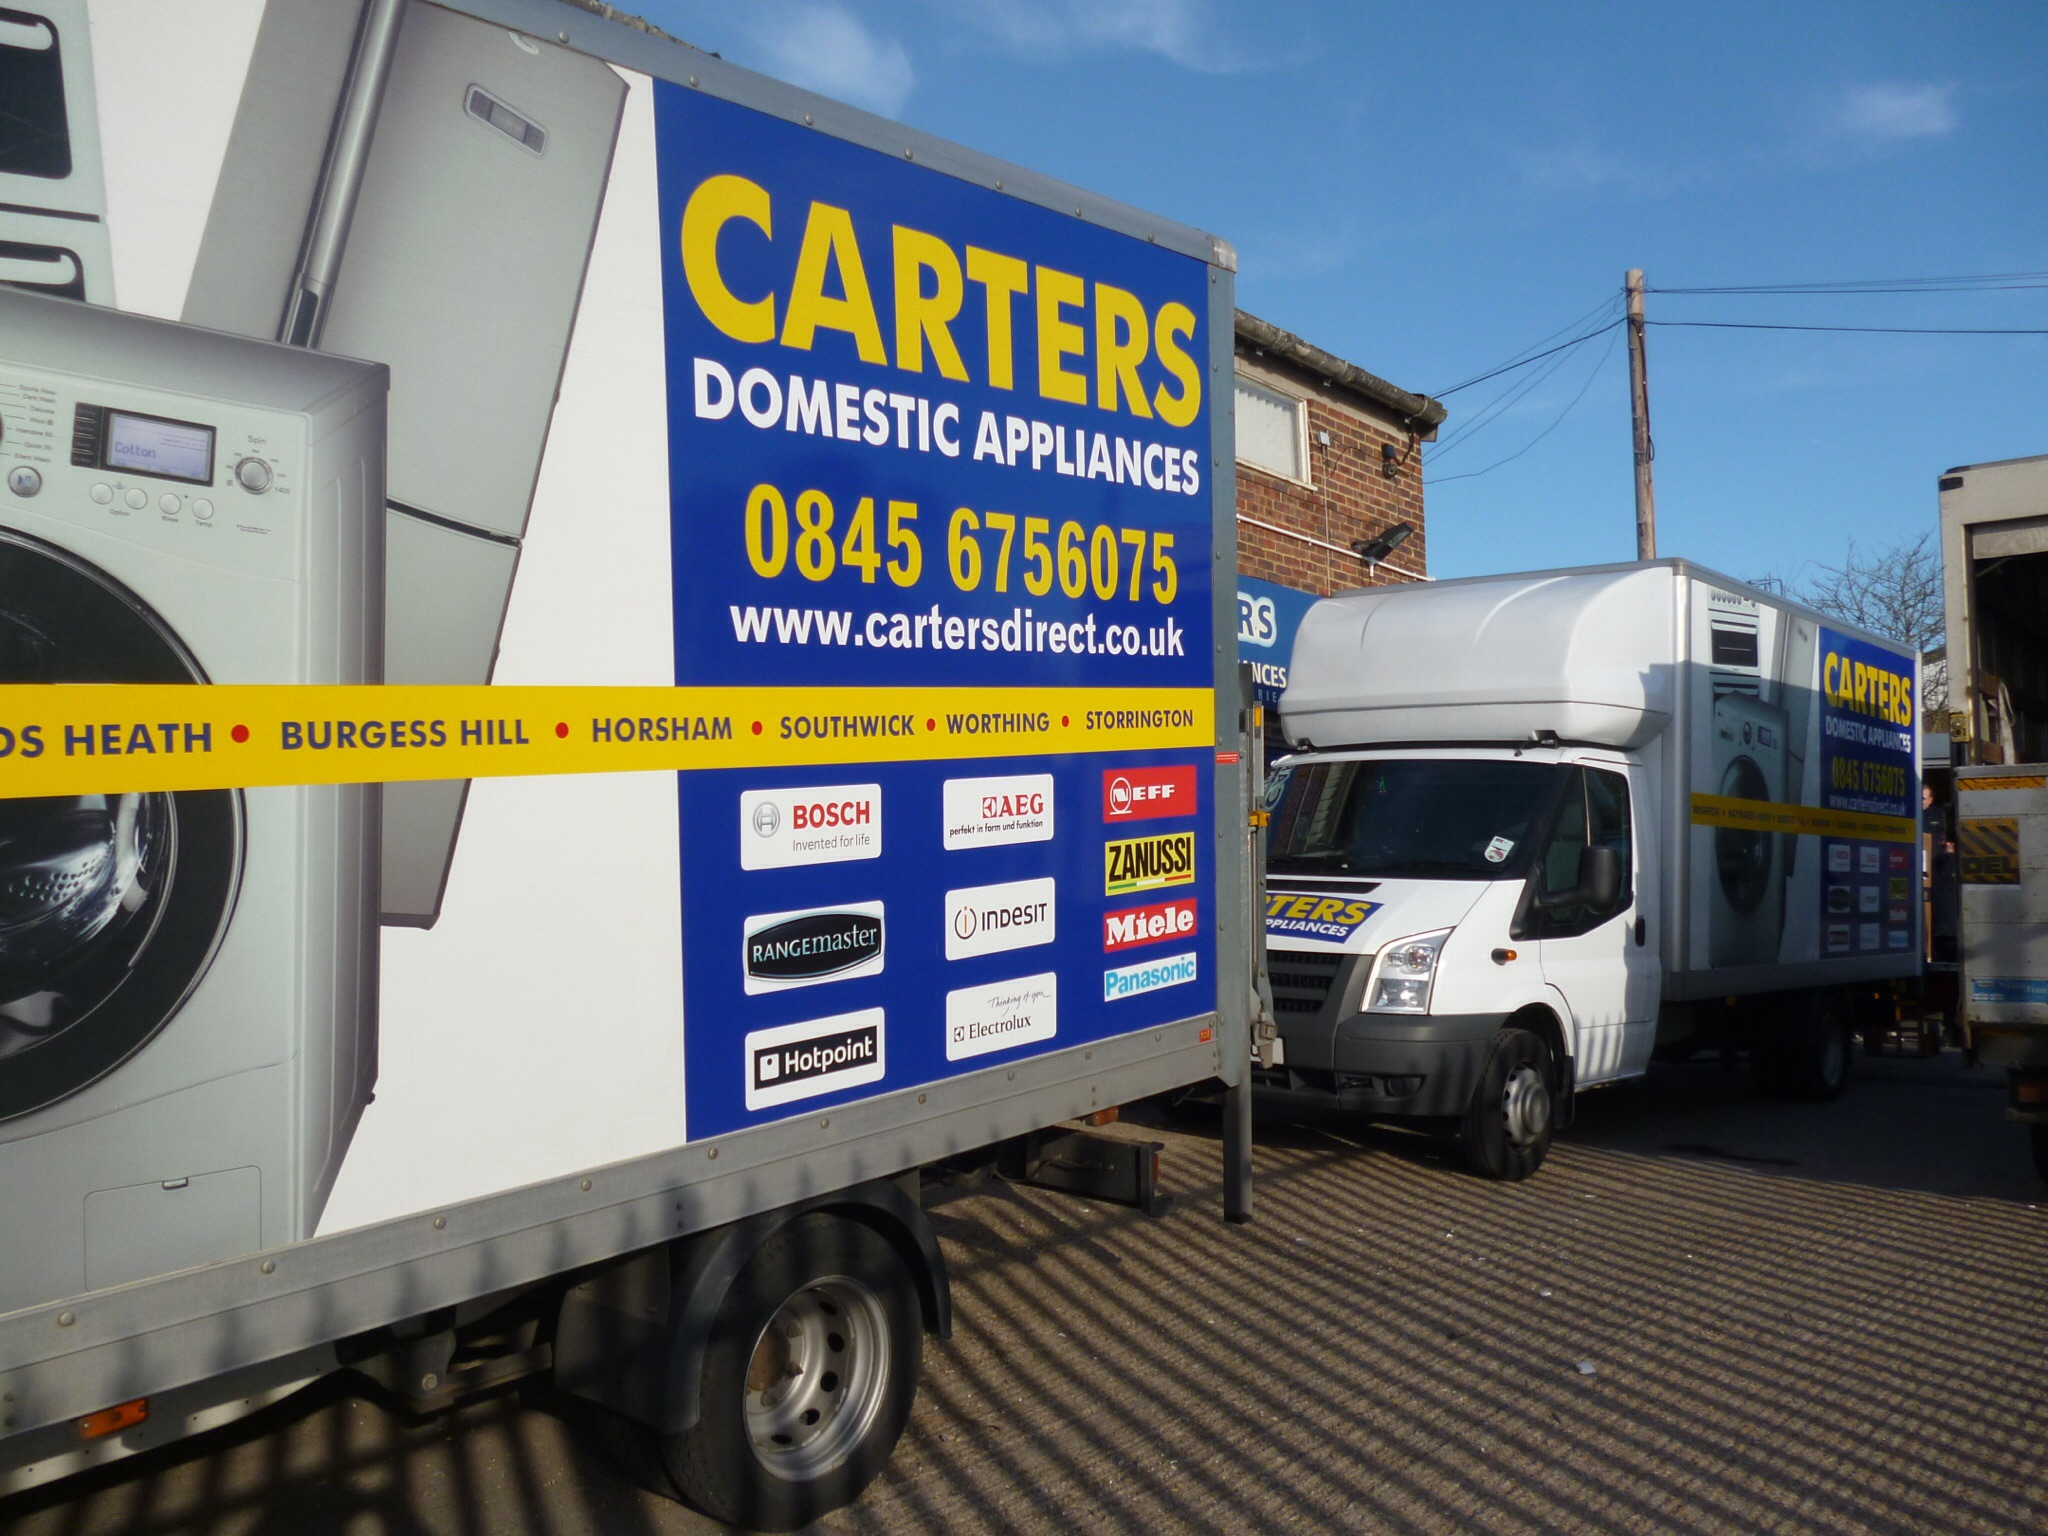 CARTERS Domestic Appliances